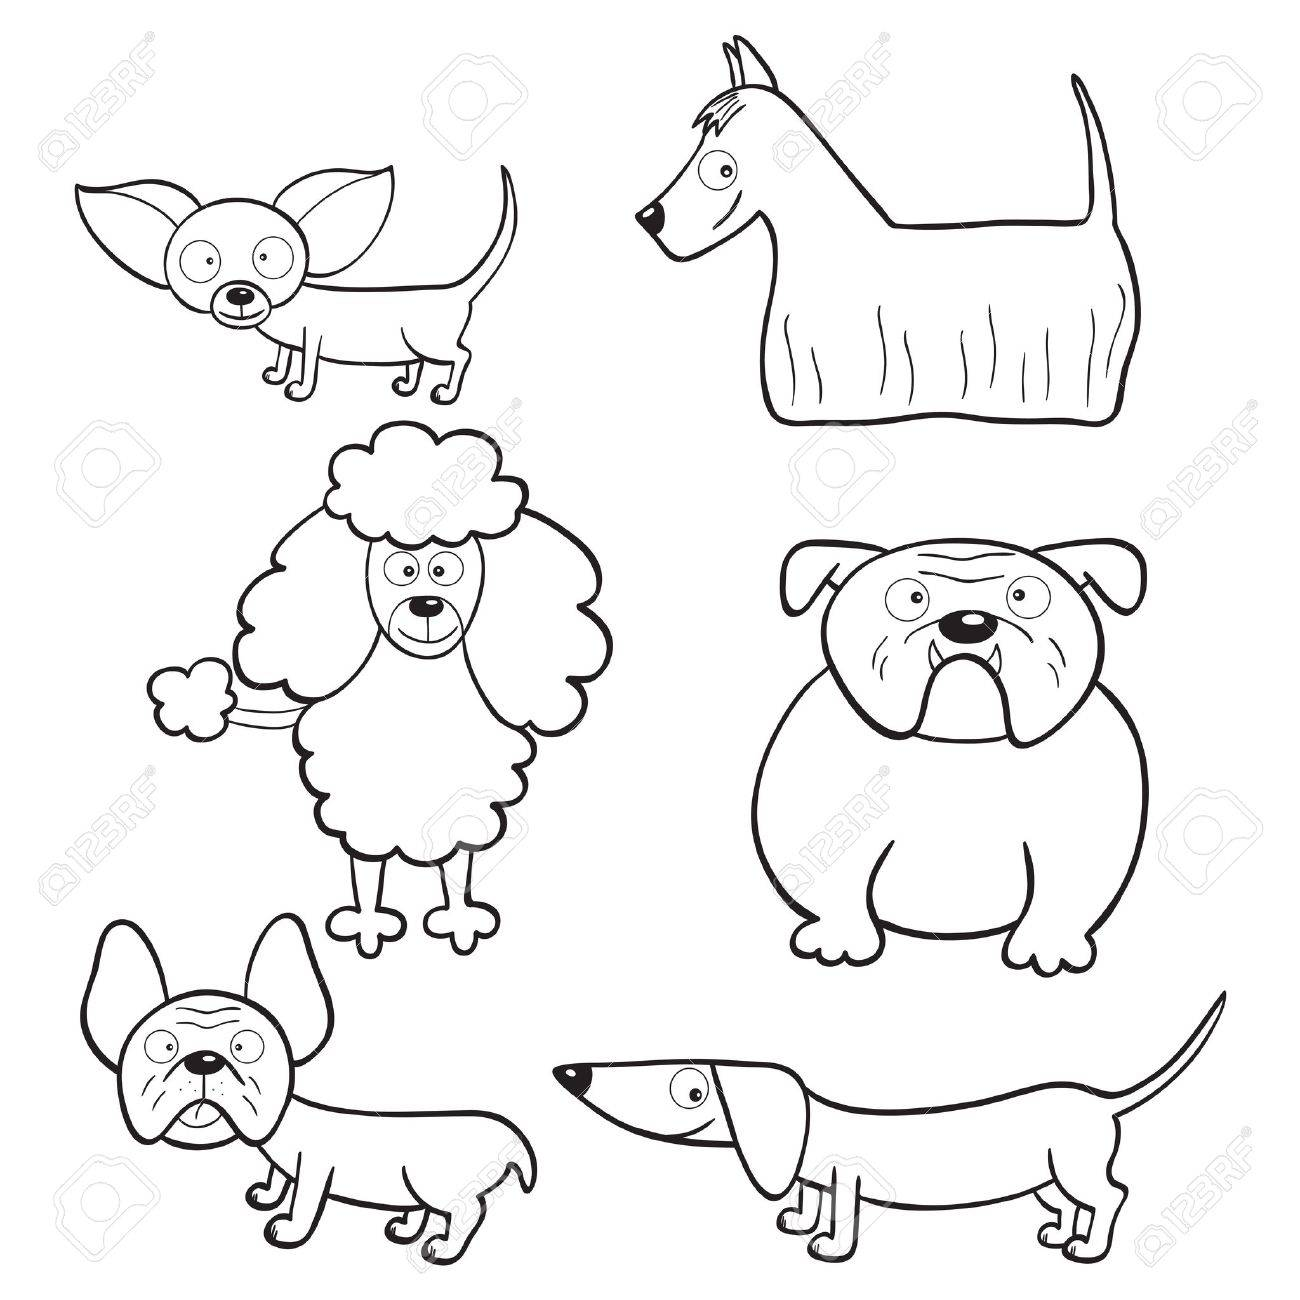 outlined cute cartoon dogs for coloring book royalty free cliparts